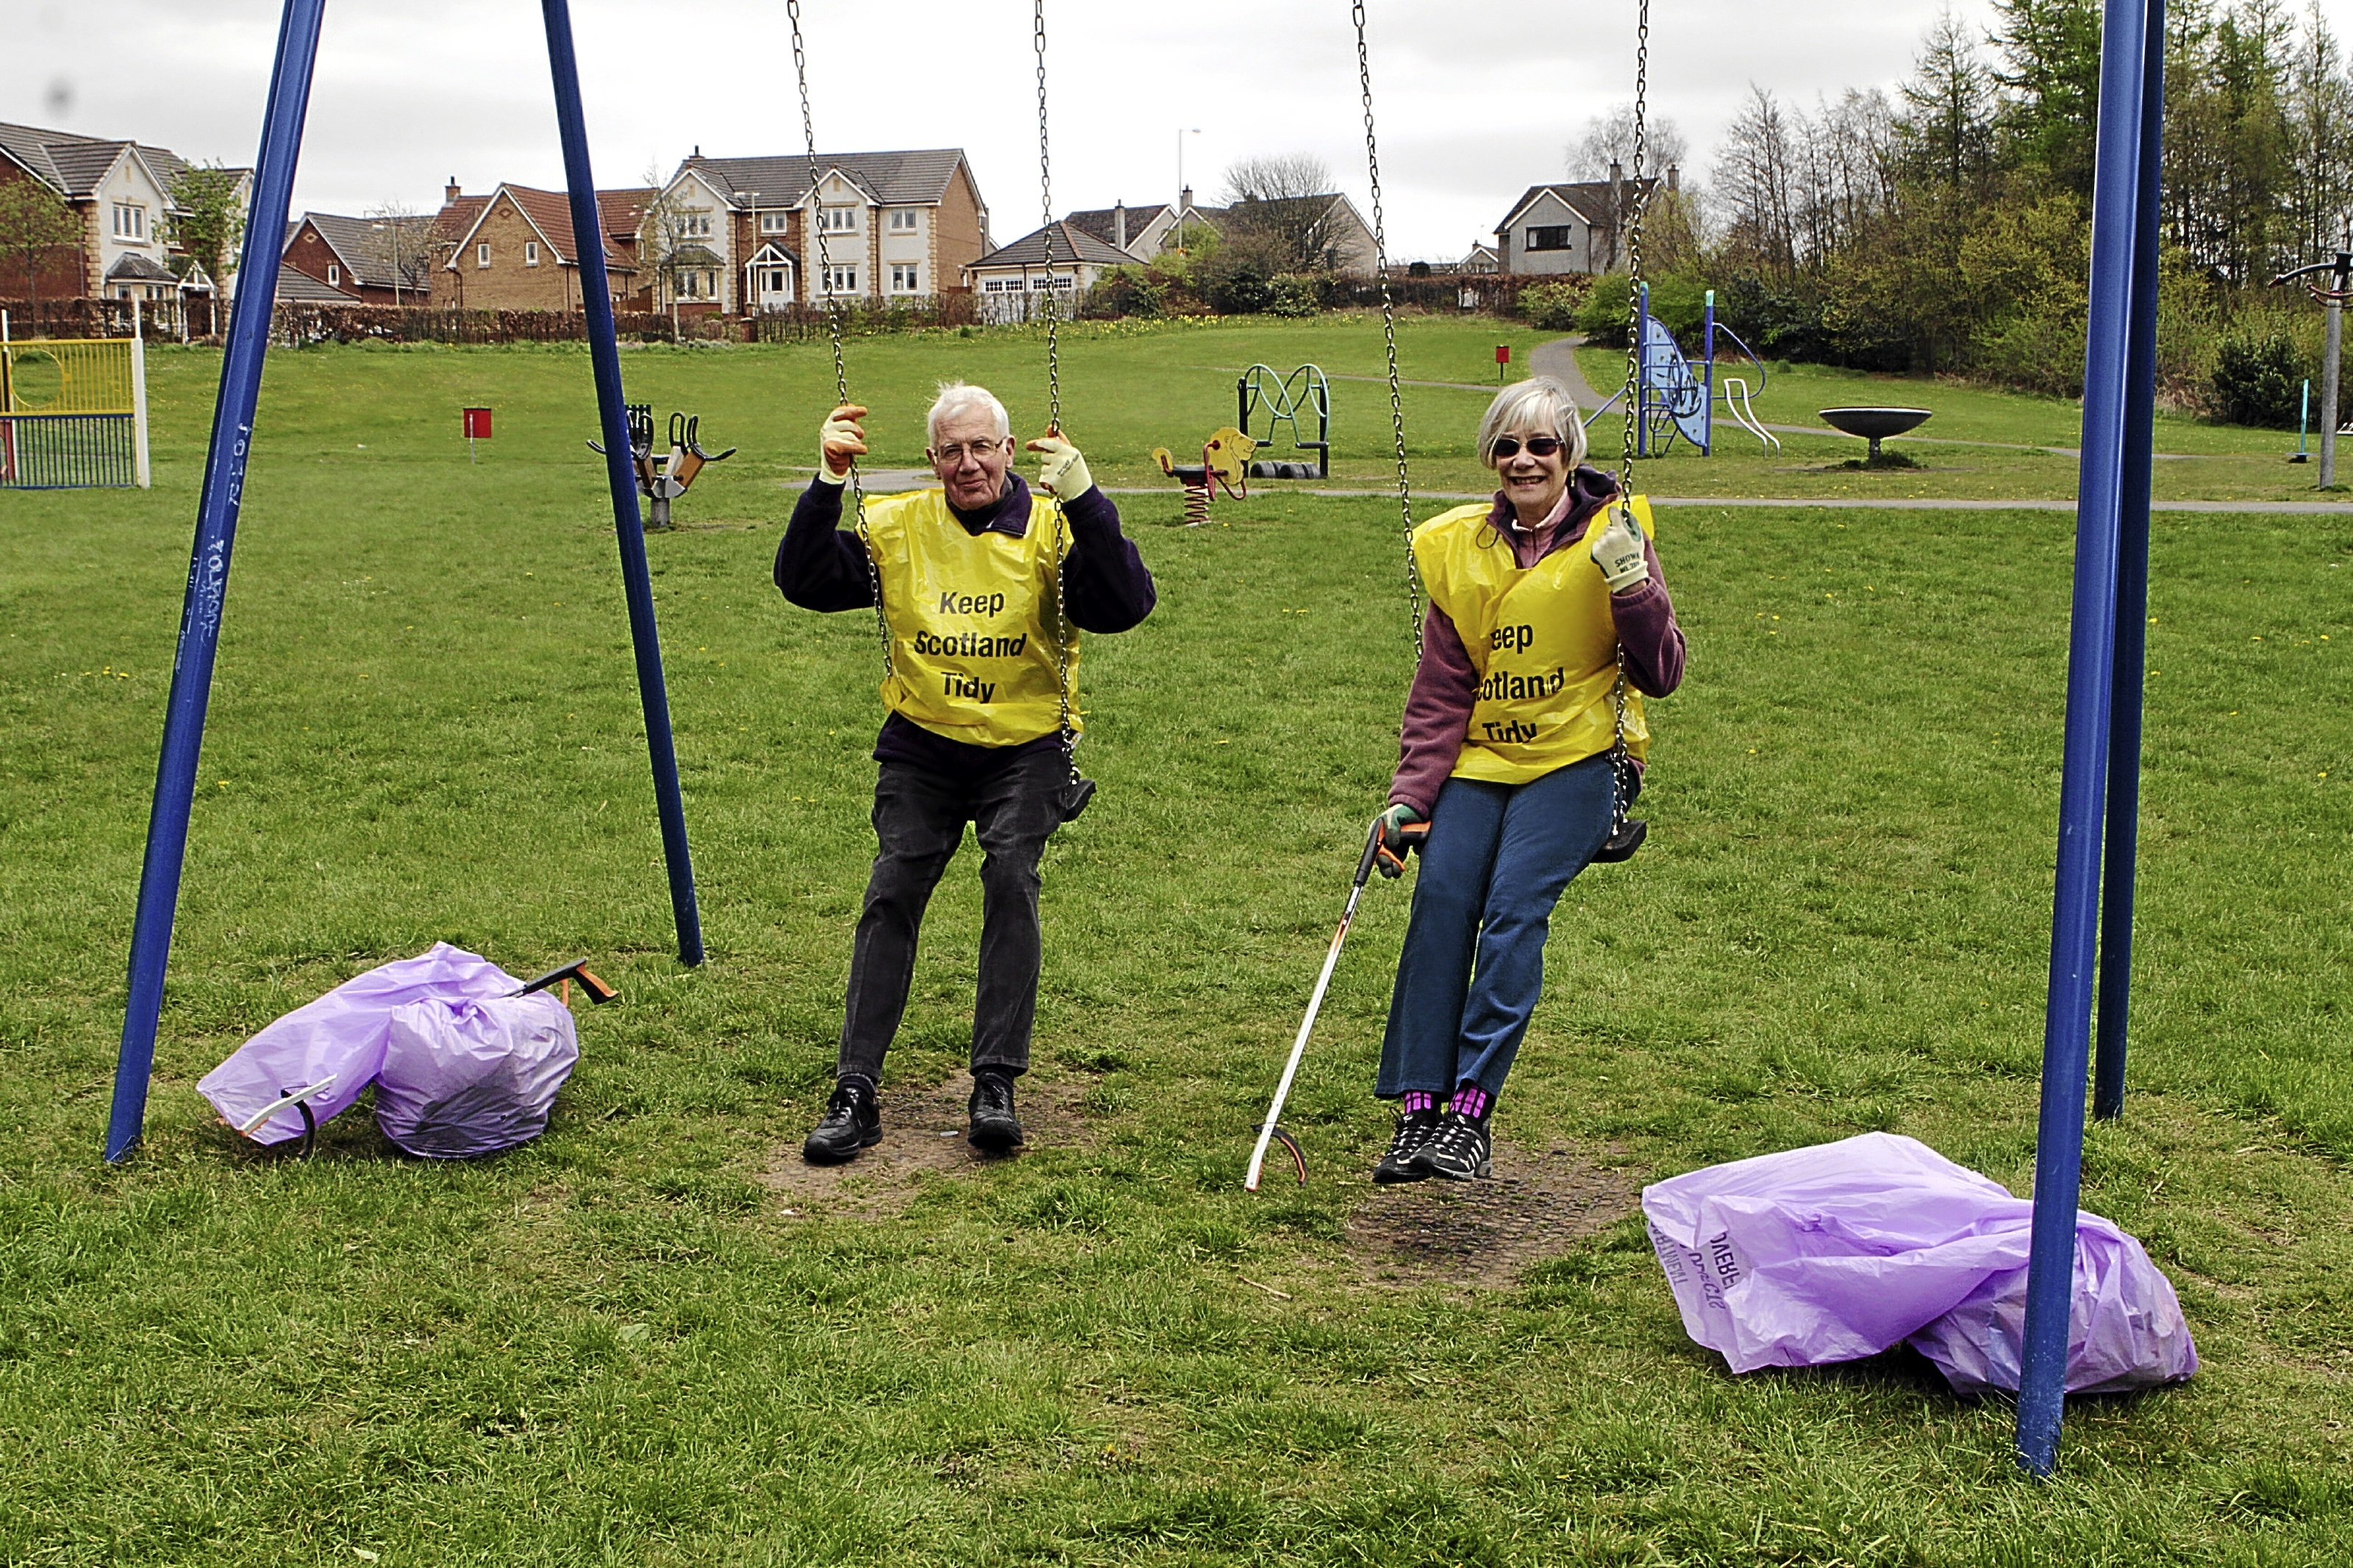 Jeanette Thirsk and husband Stewart spend their spare time helping to maintain and look after their local park. But they now say they need more help.